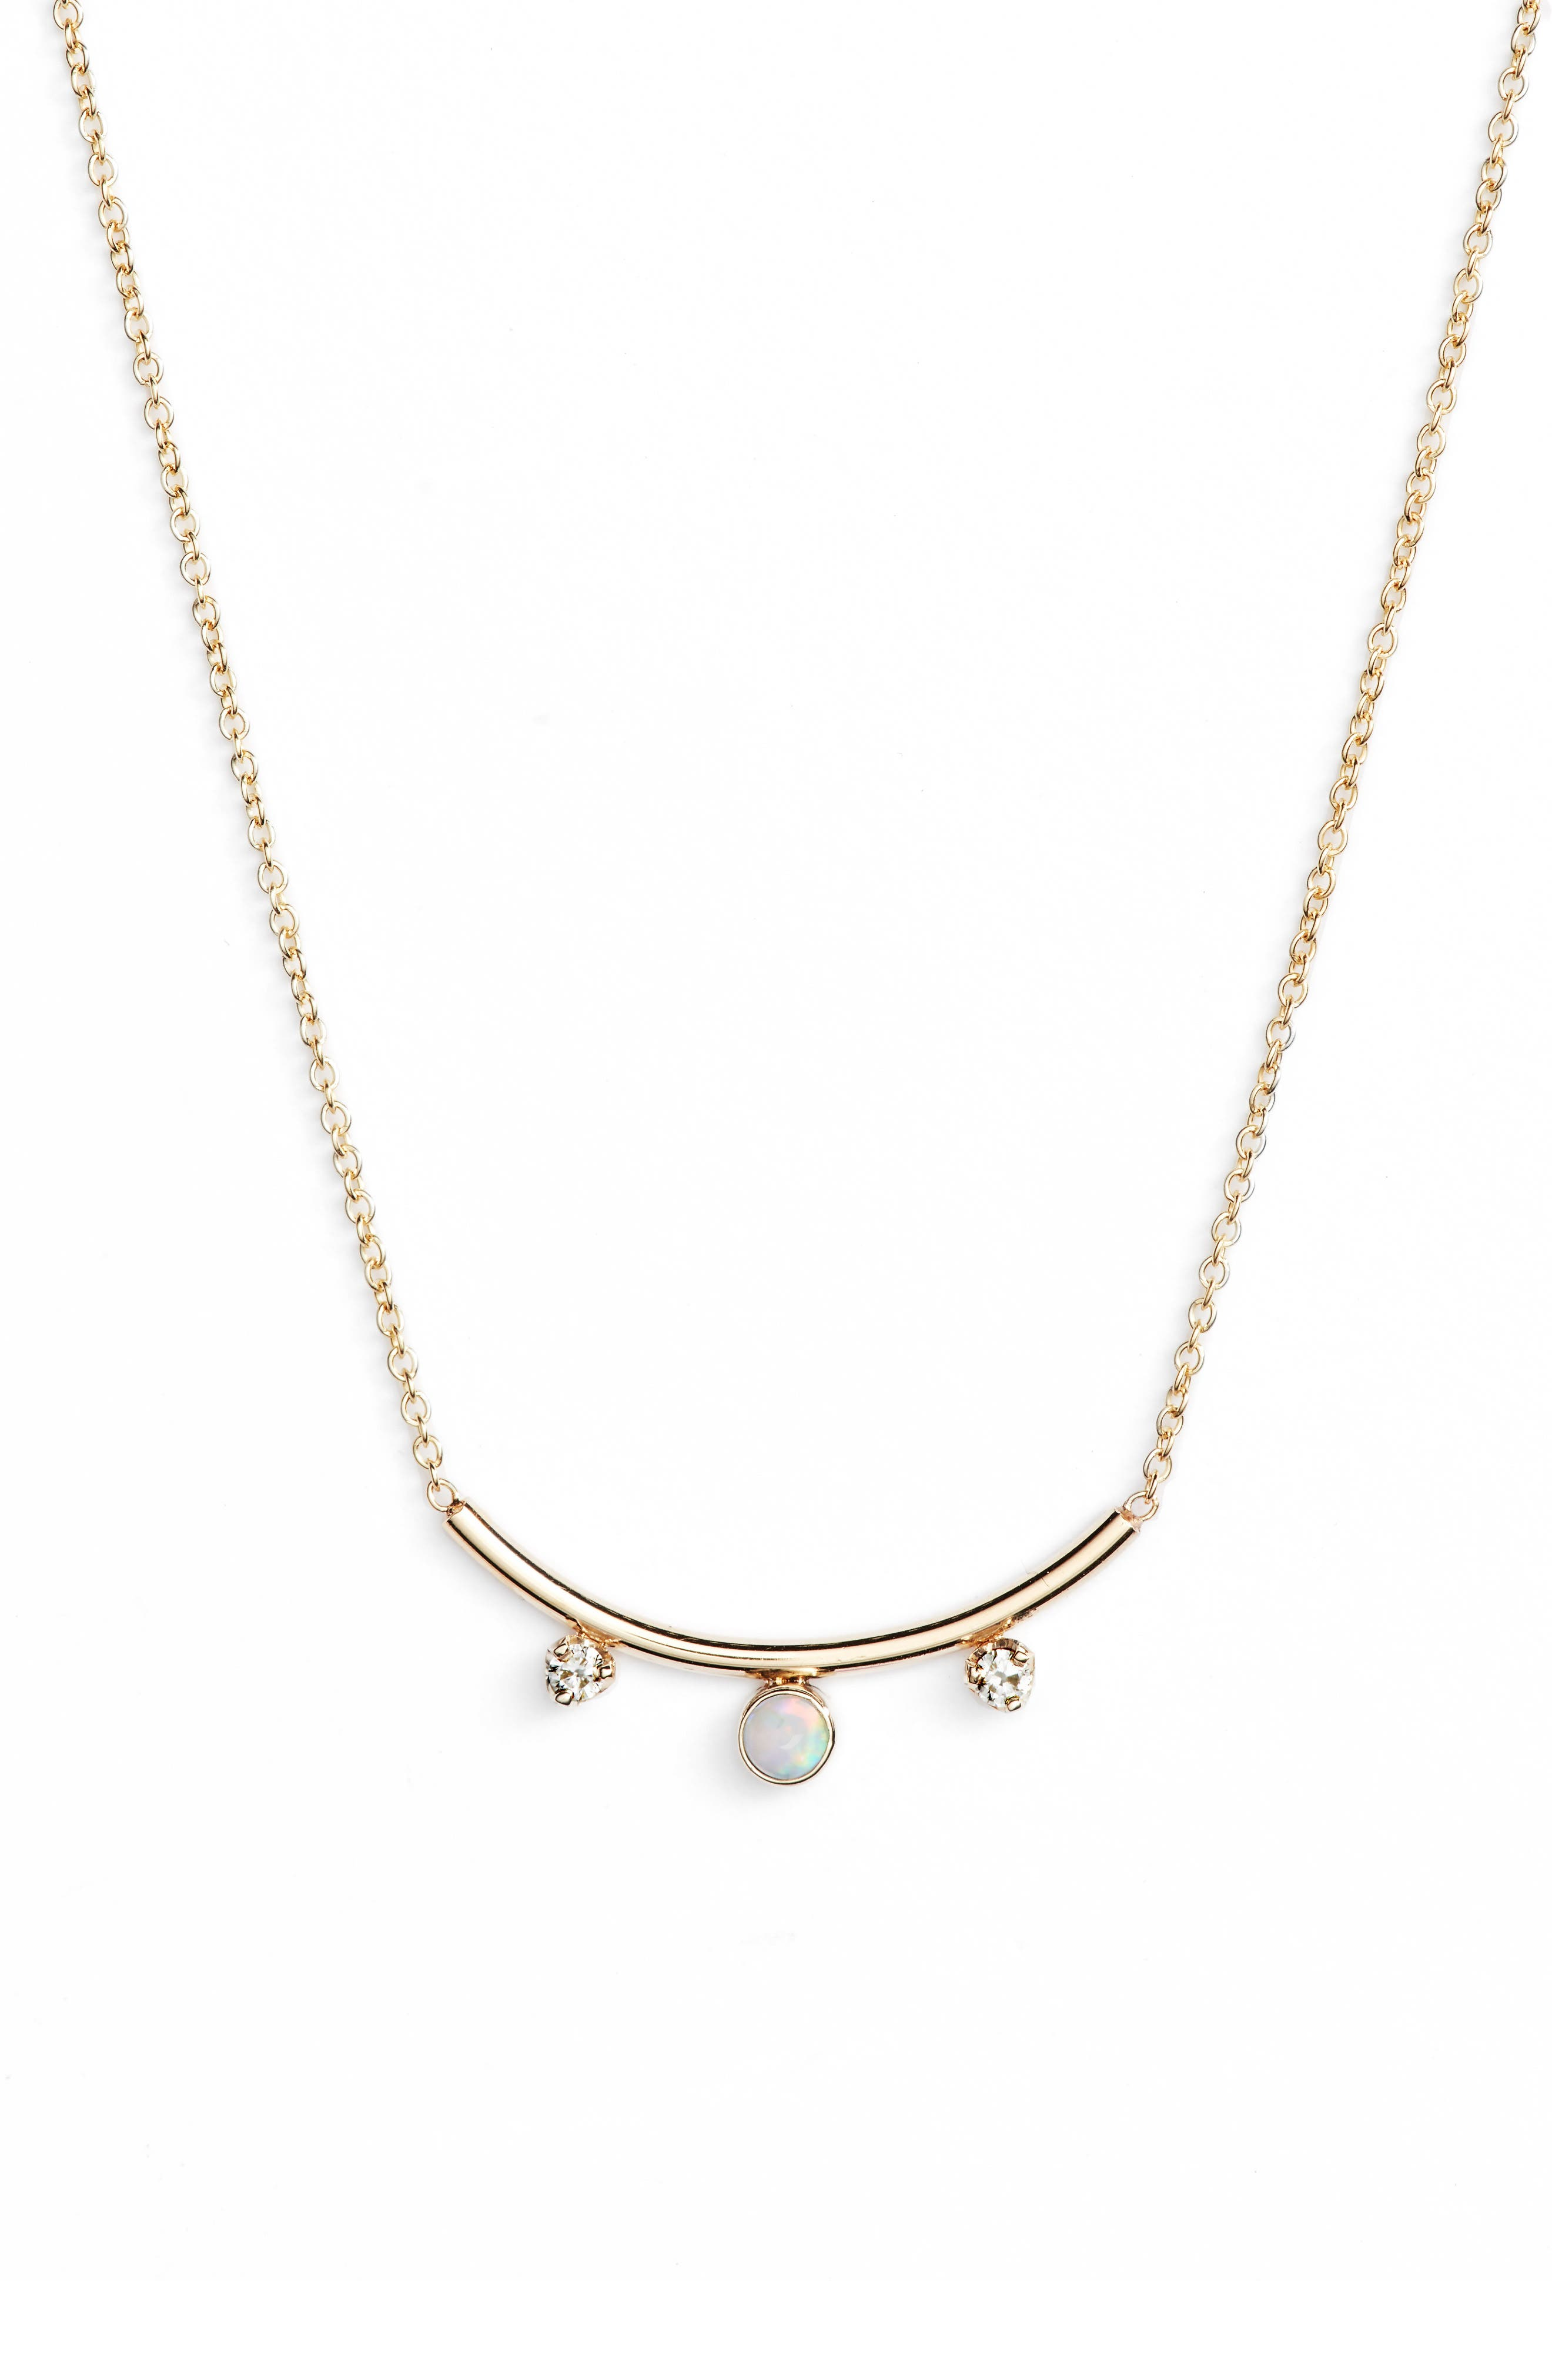 Zoe Chicco Curved Bar Diamond And Opal Pendant